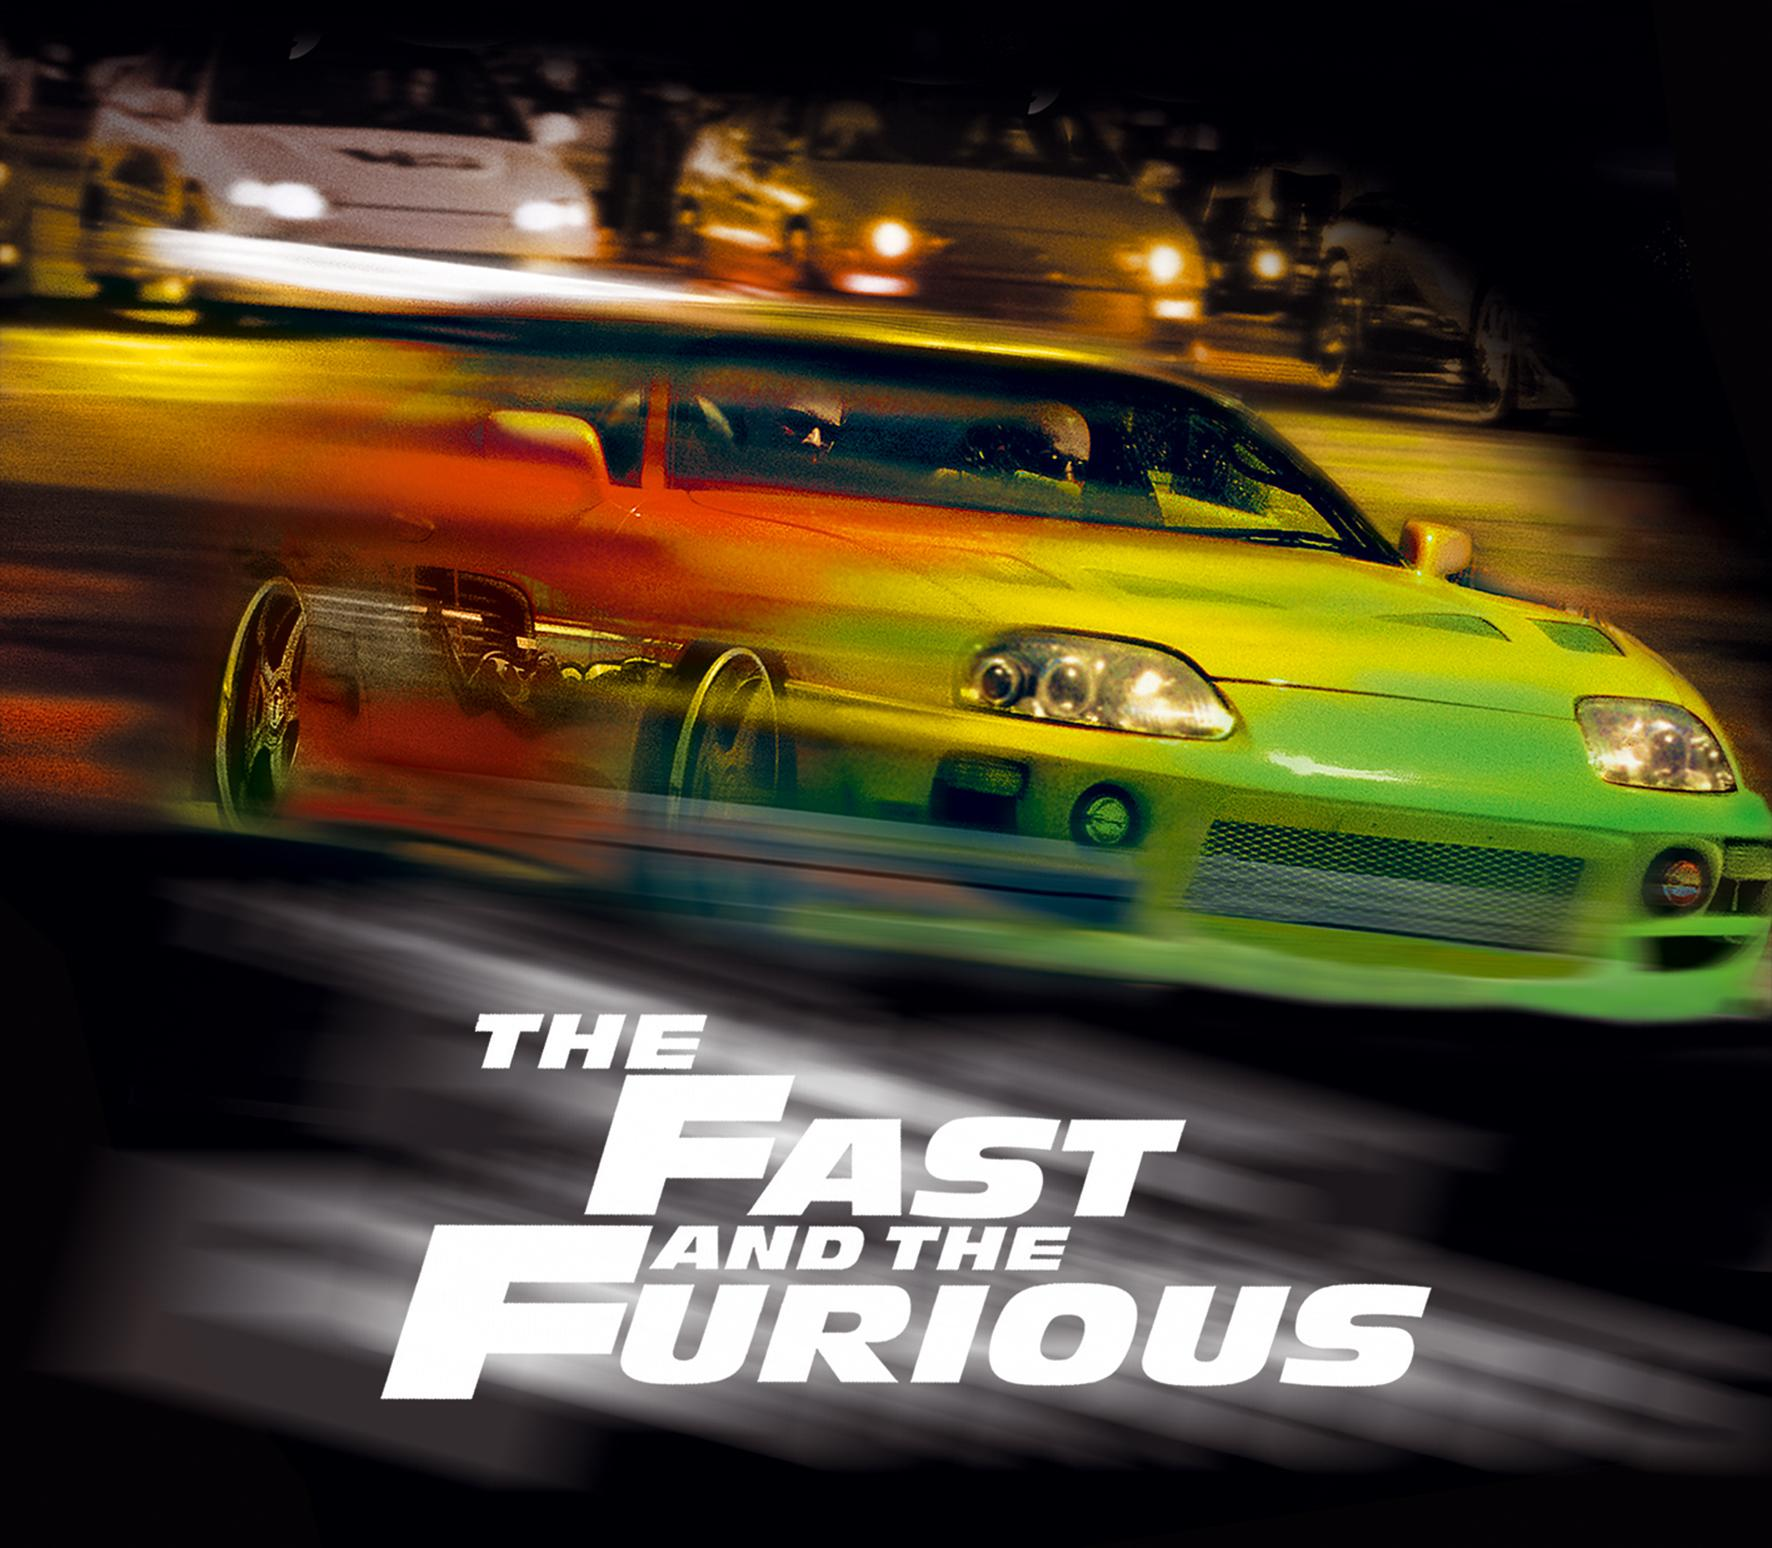 Most Viewed The Fast And The Furious Wallpapers 4k Wallpapers